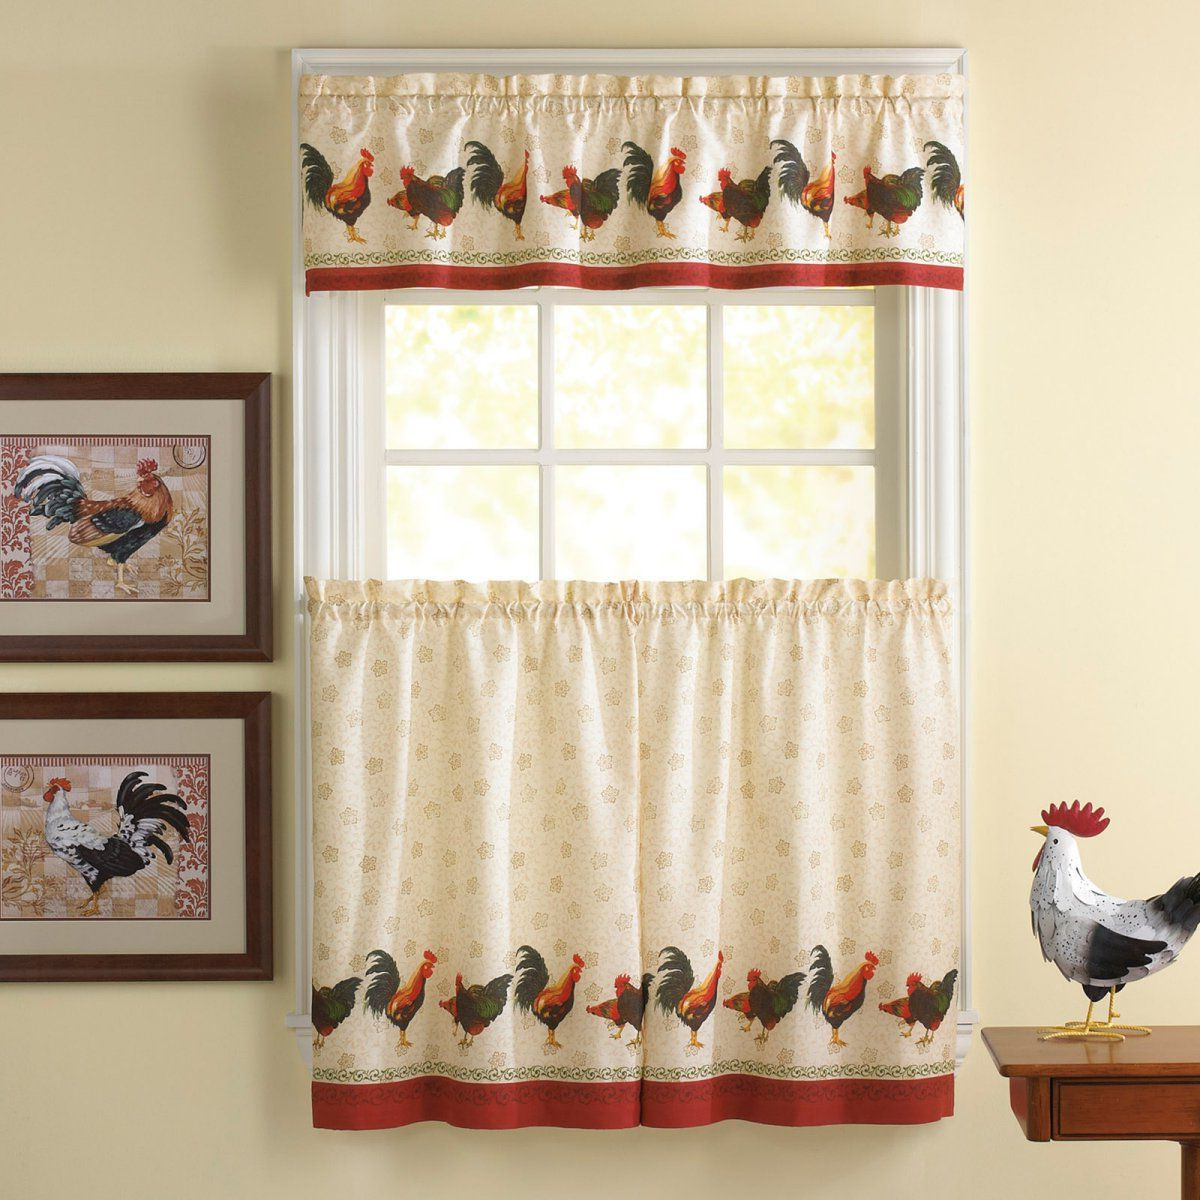 Recent Awesome Kitchen Curtains Sets #1 Country Rooster Kitchen With Traditional Two Piece Tailored Tier And Swag Window Curtains Sets With Ornate Rooster Print (View 12 of 20)